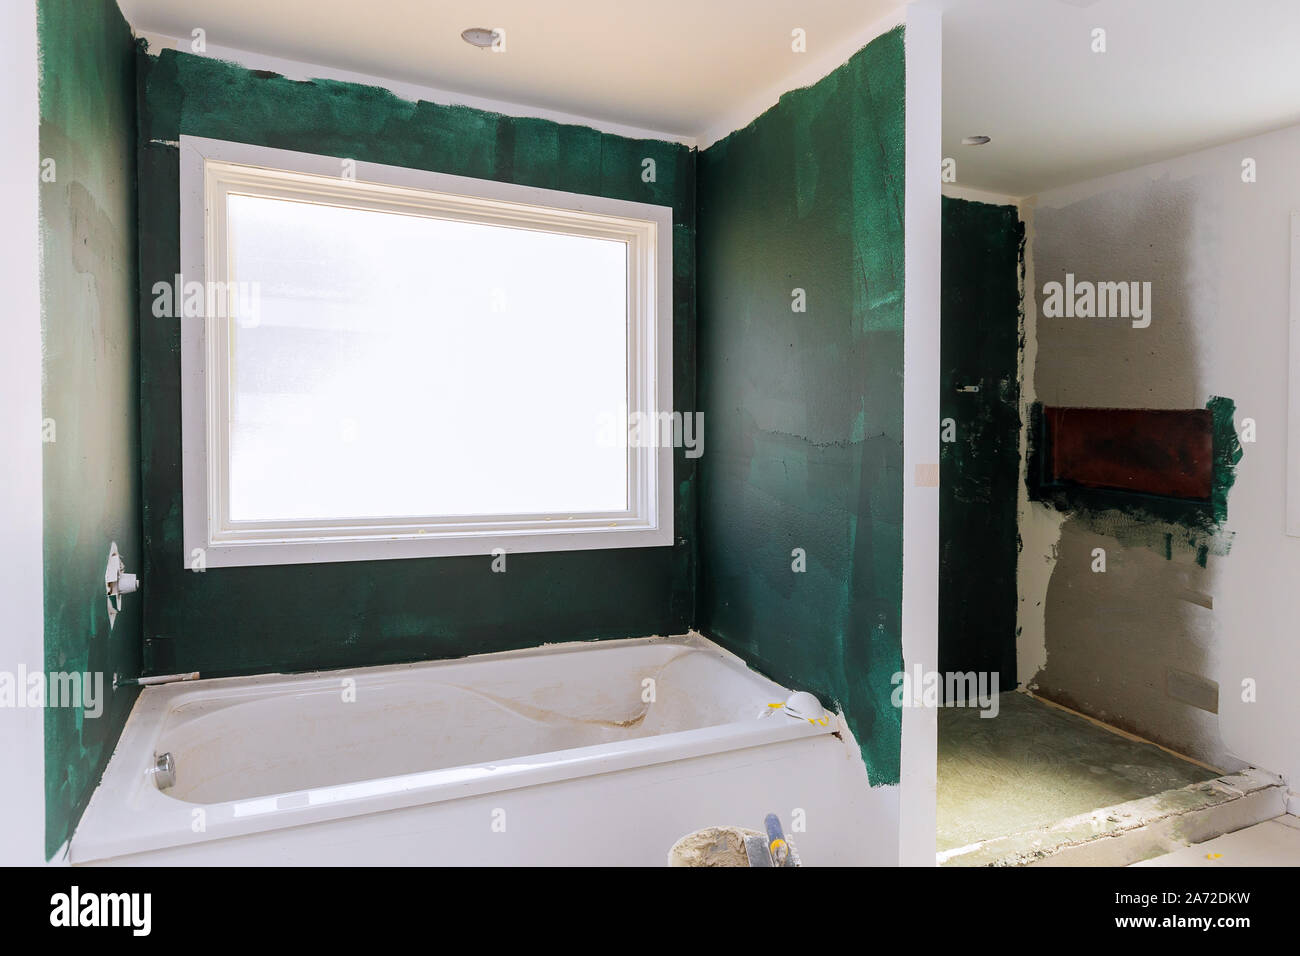 Construction Remodeling A Bathroom New Apartments Repair And Installation Interior Drywall Finish Stock Photo Alamy